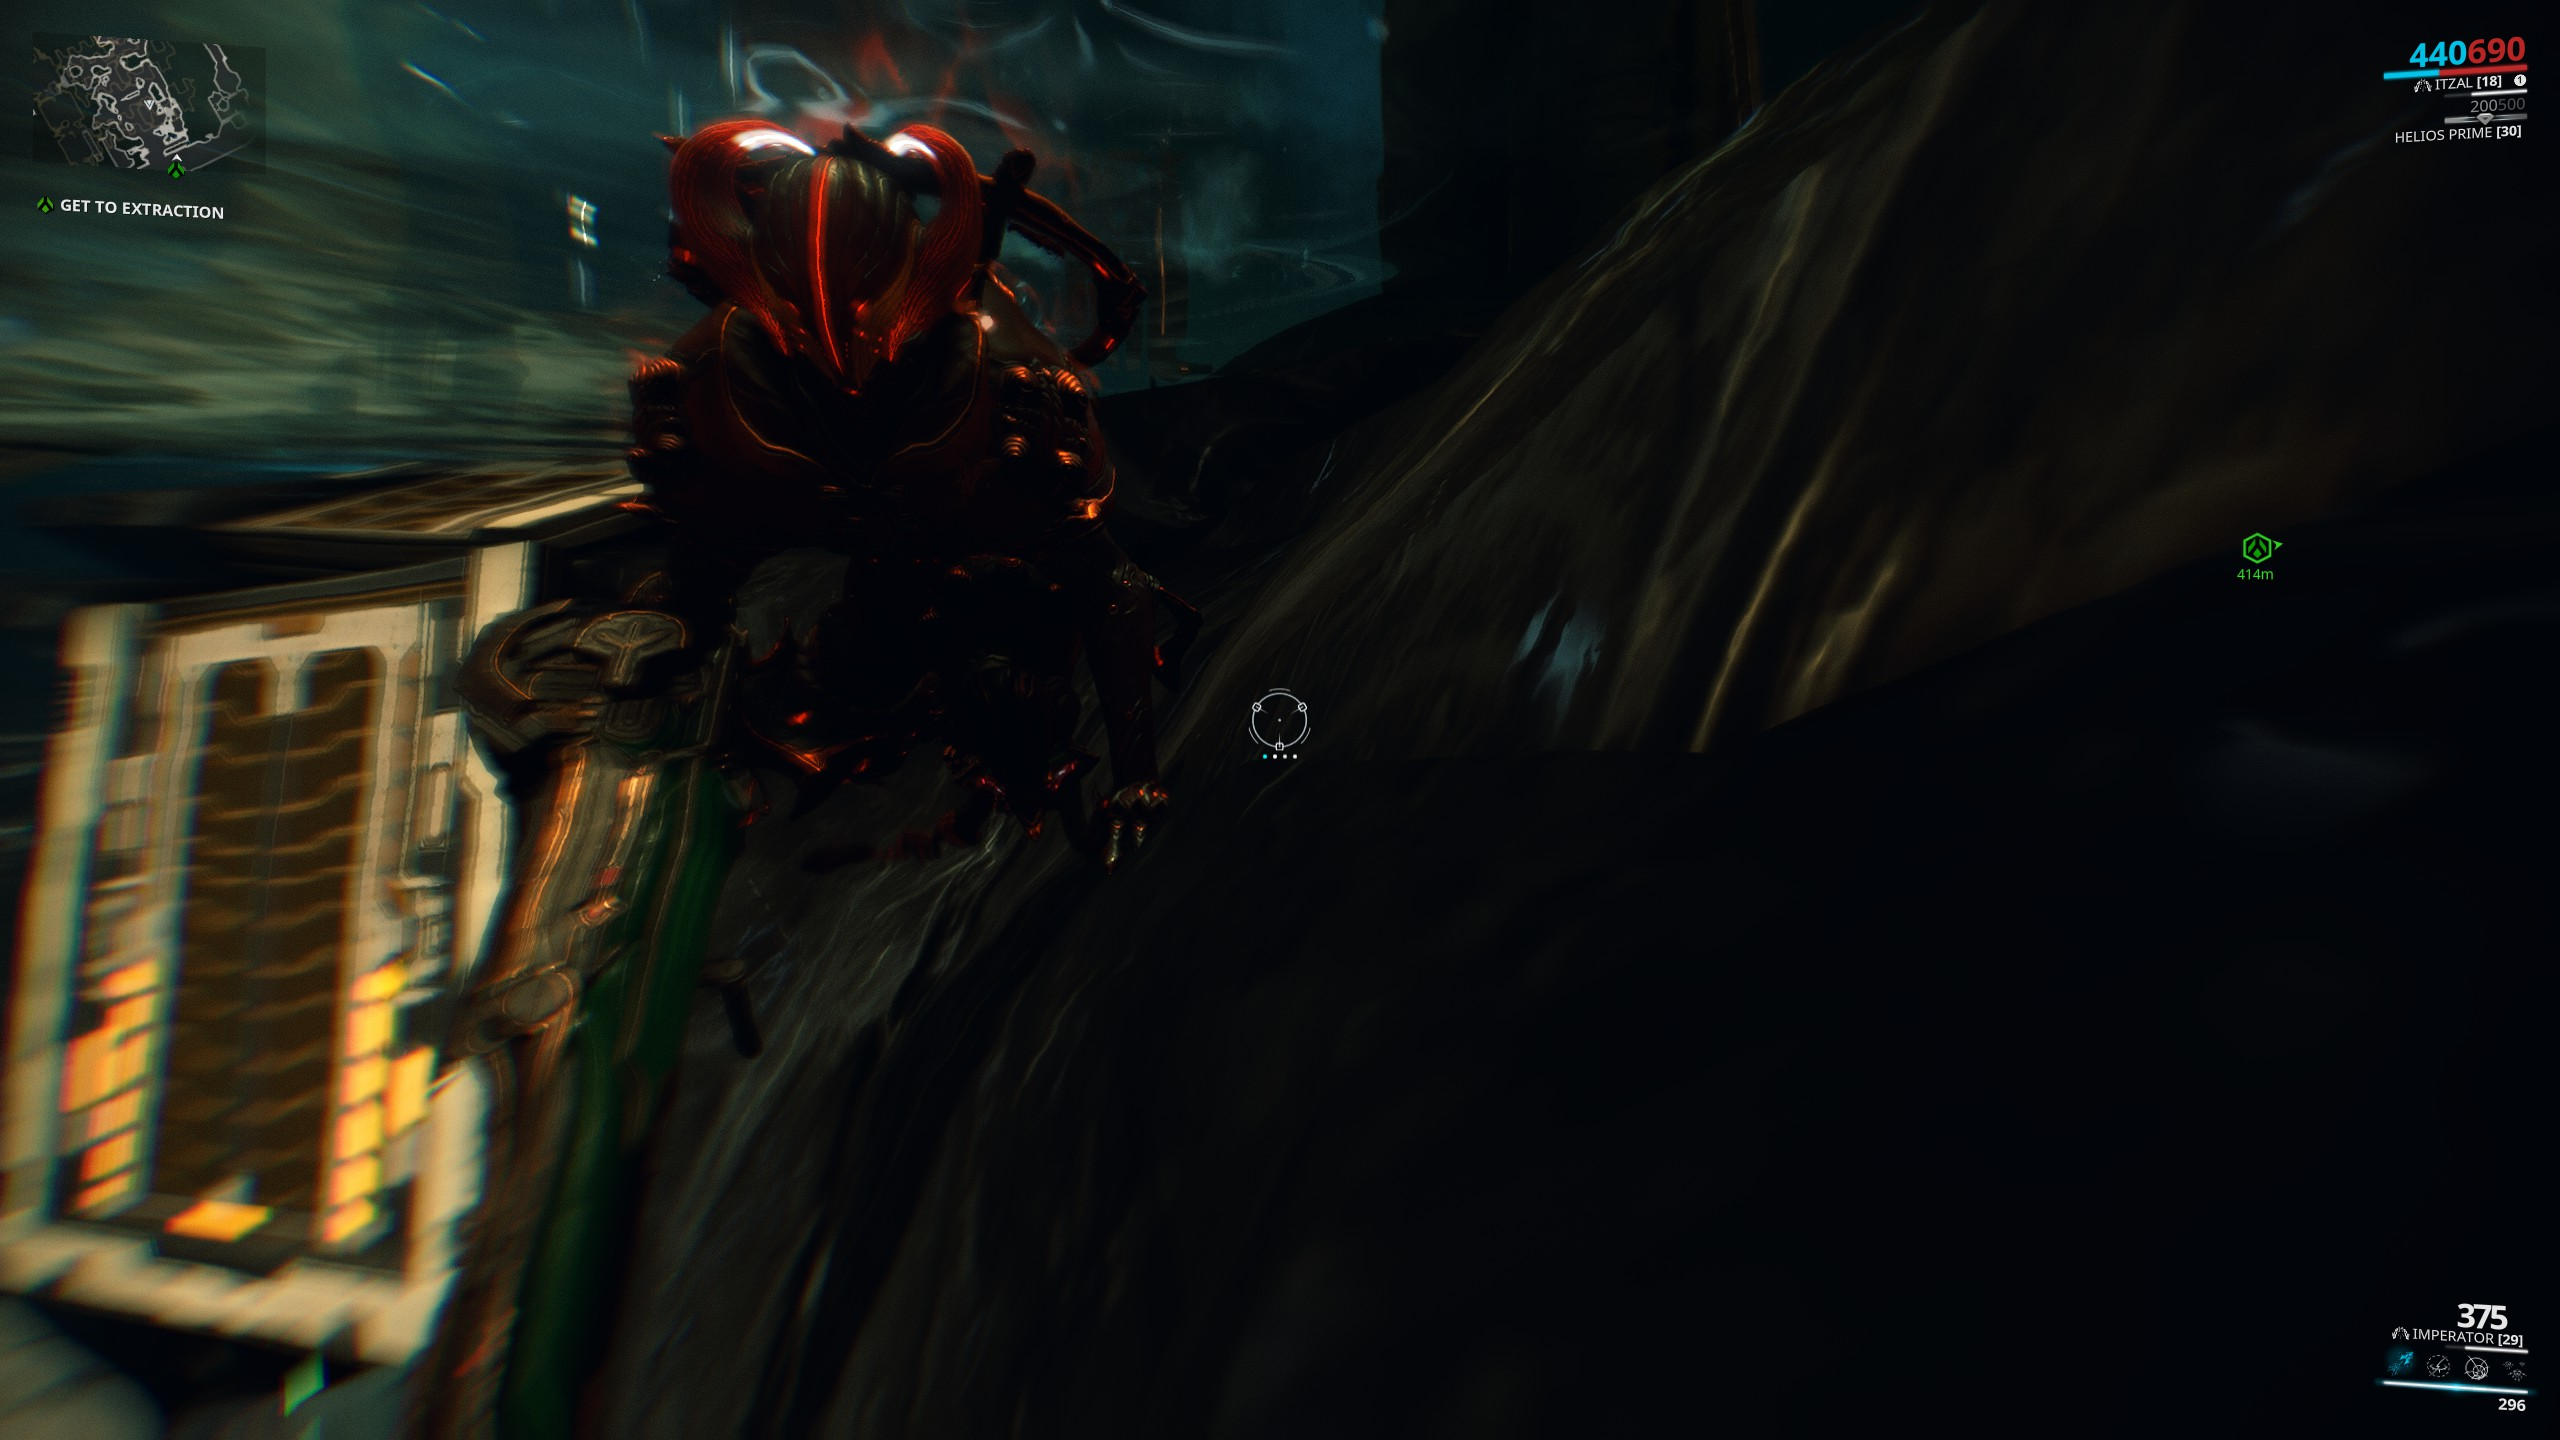 Archwing subersibl:Neptune:Sycorax - Stuck in a loop exiting